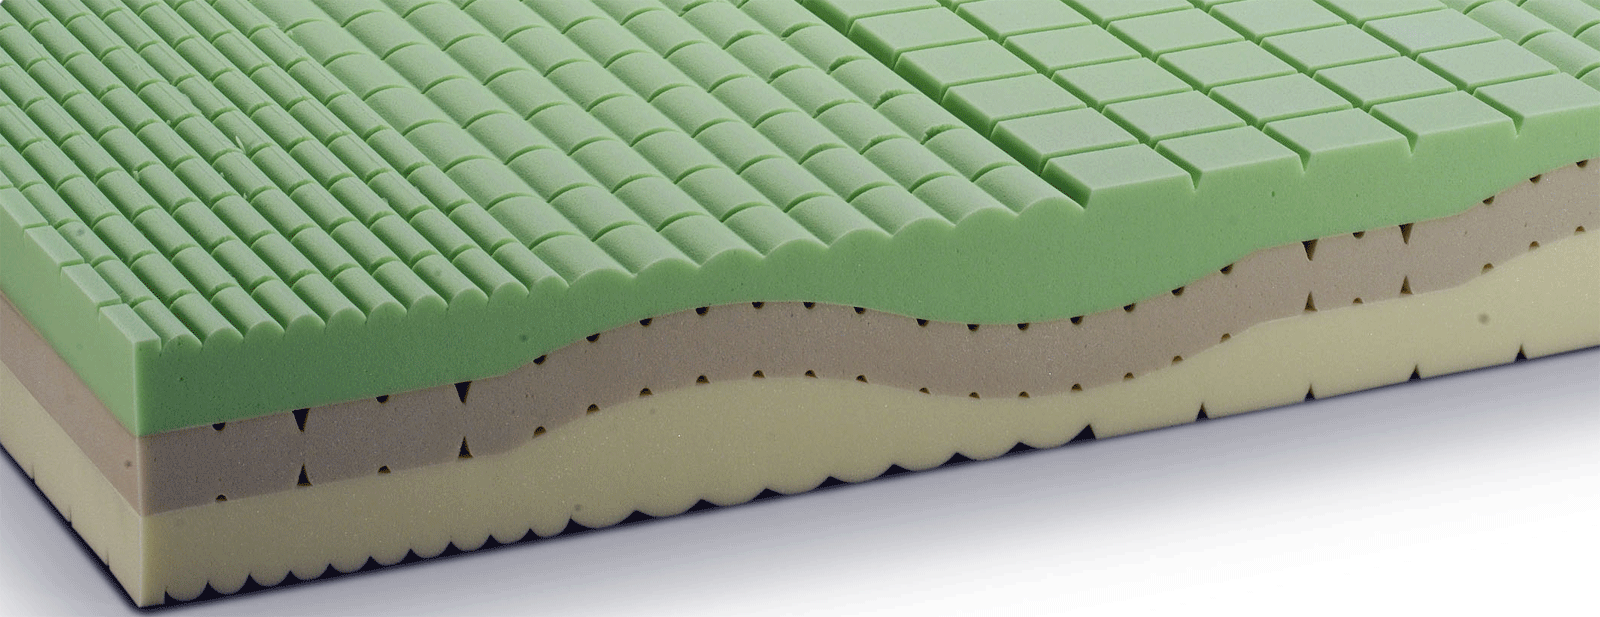 Materassi In Lattice Cancerogeni.Memory Foam Migliori Materassi Ortopedici